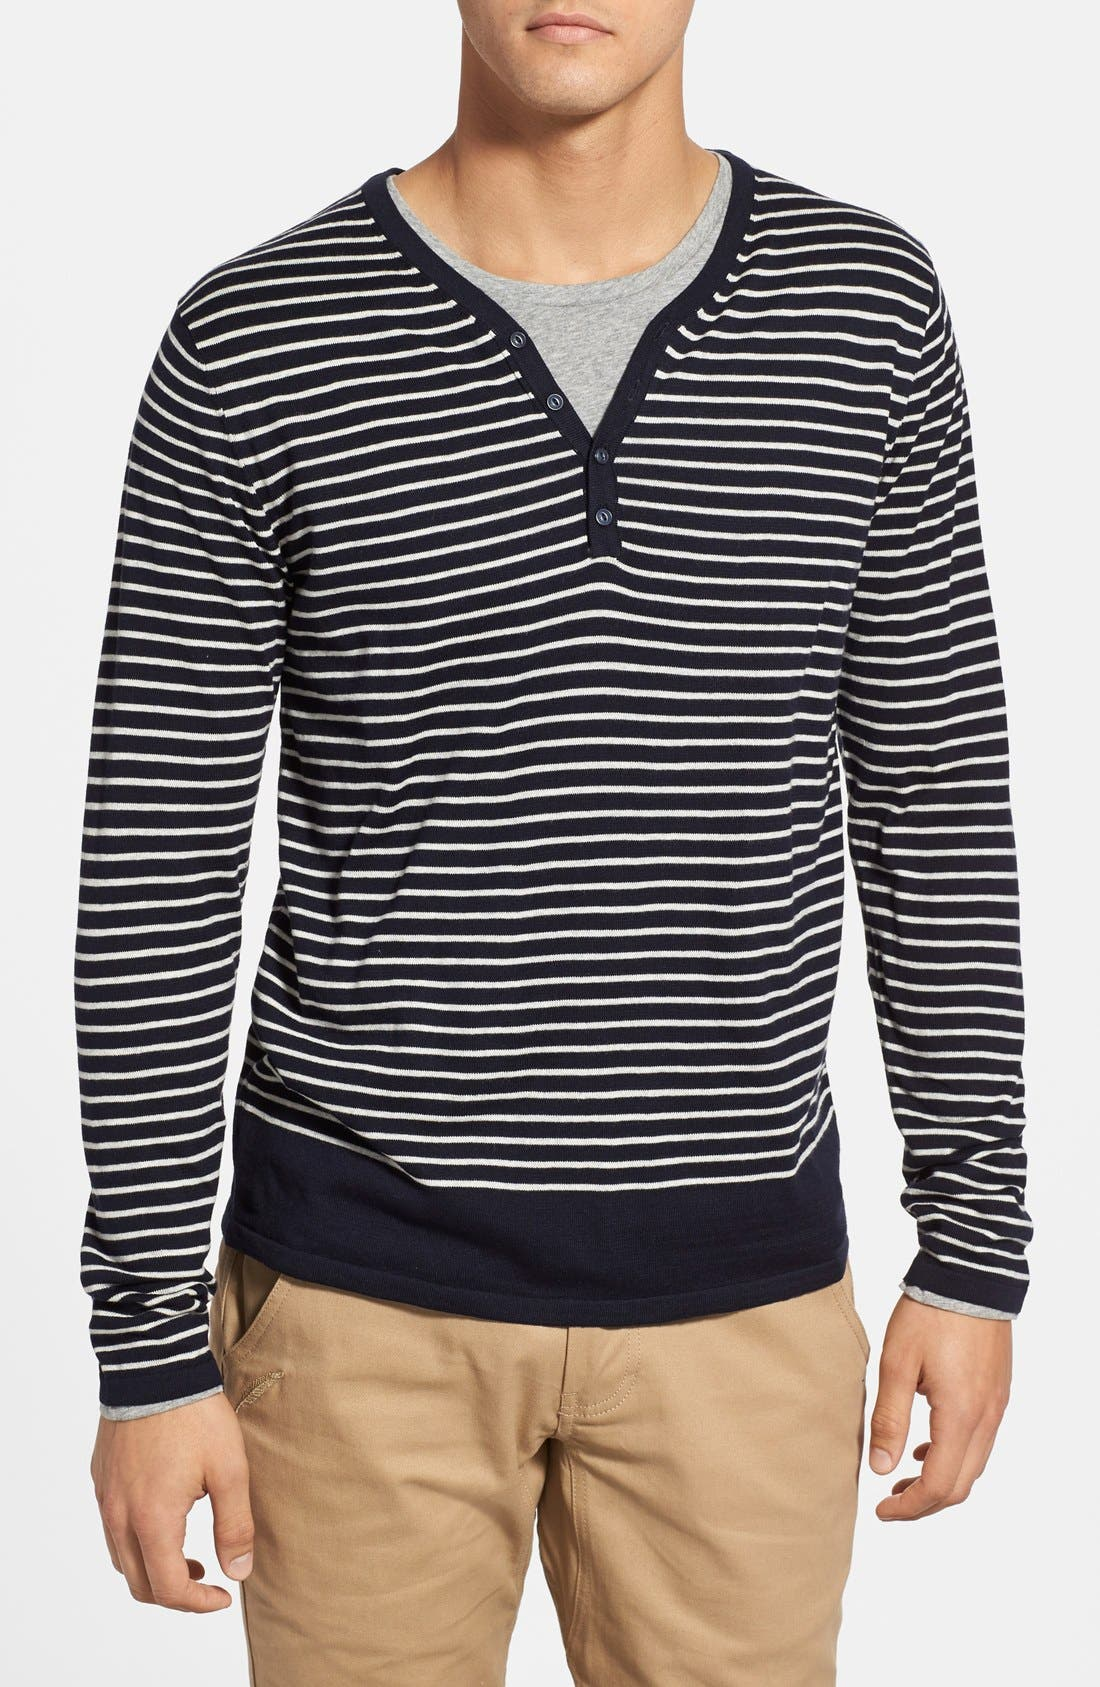 SCOTCH & SODA 'Granded' Stripe Henley Sweater with T-Shirt, Main, color, 400